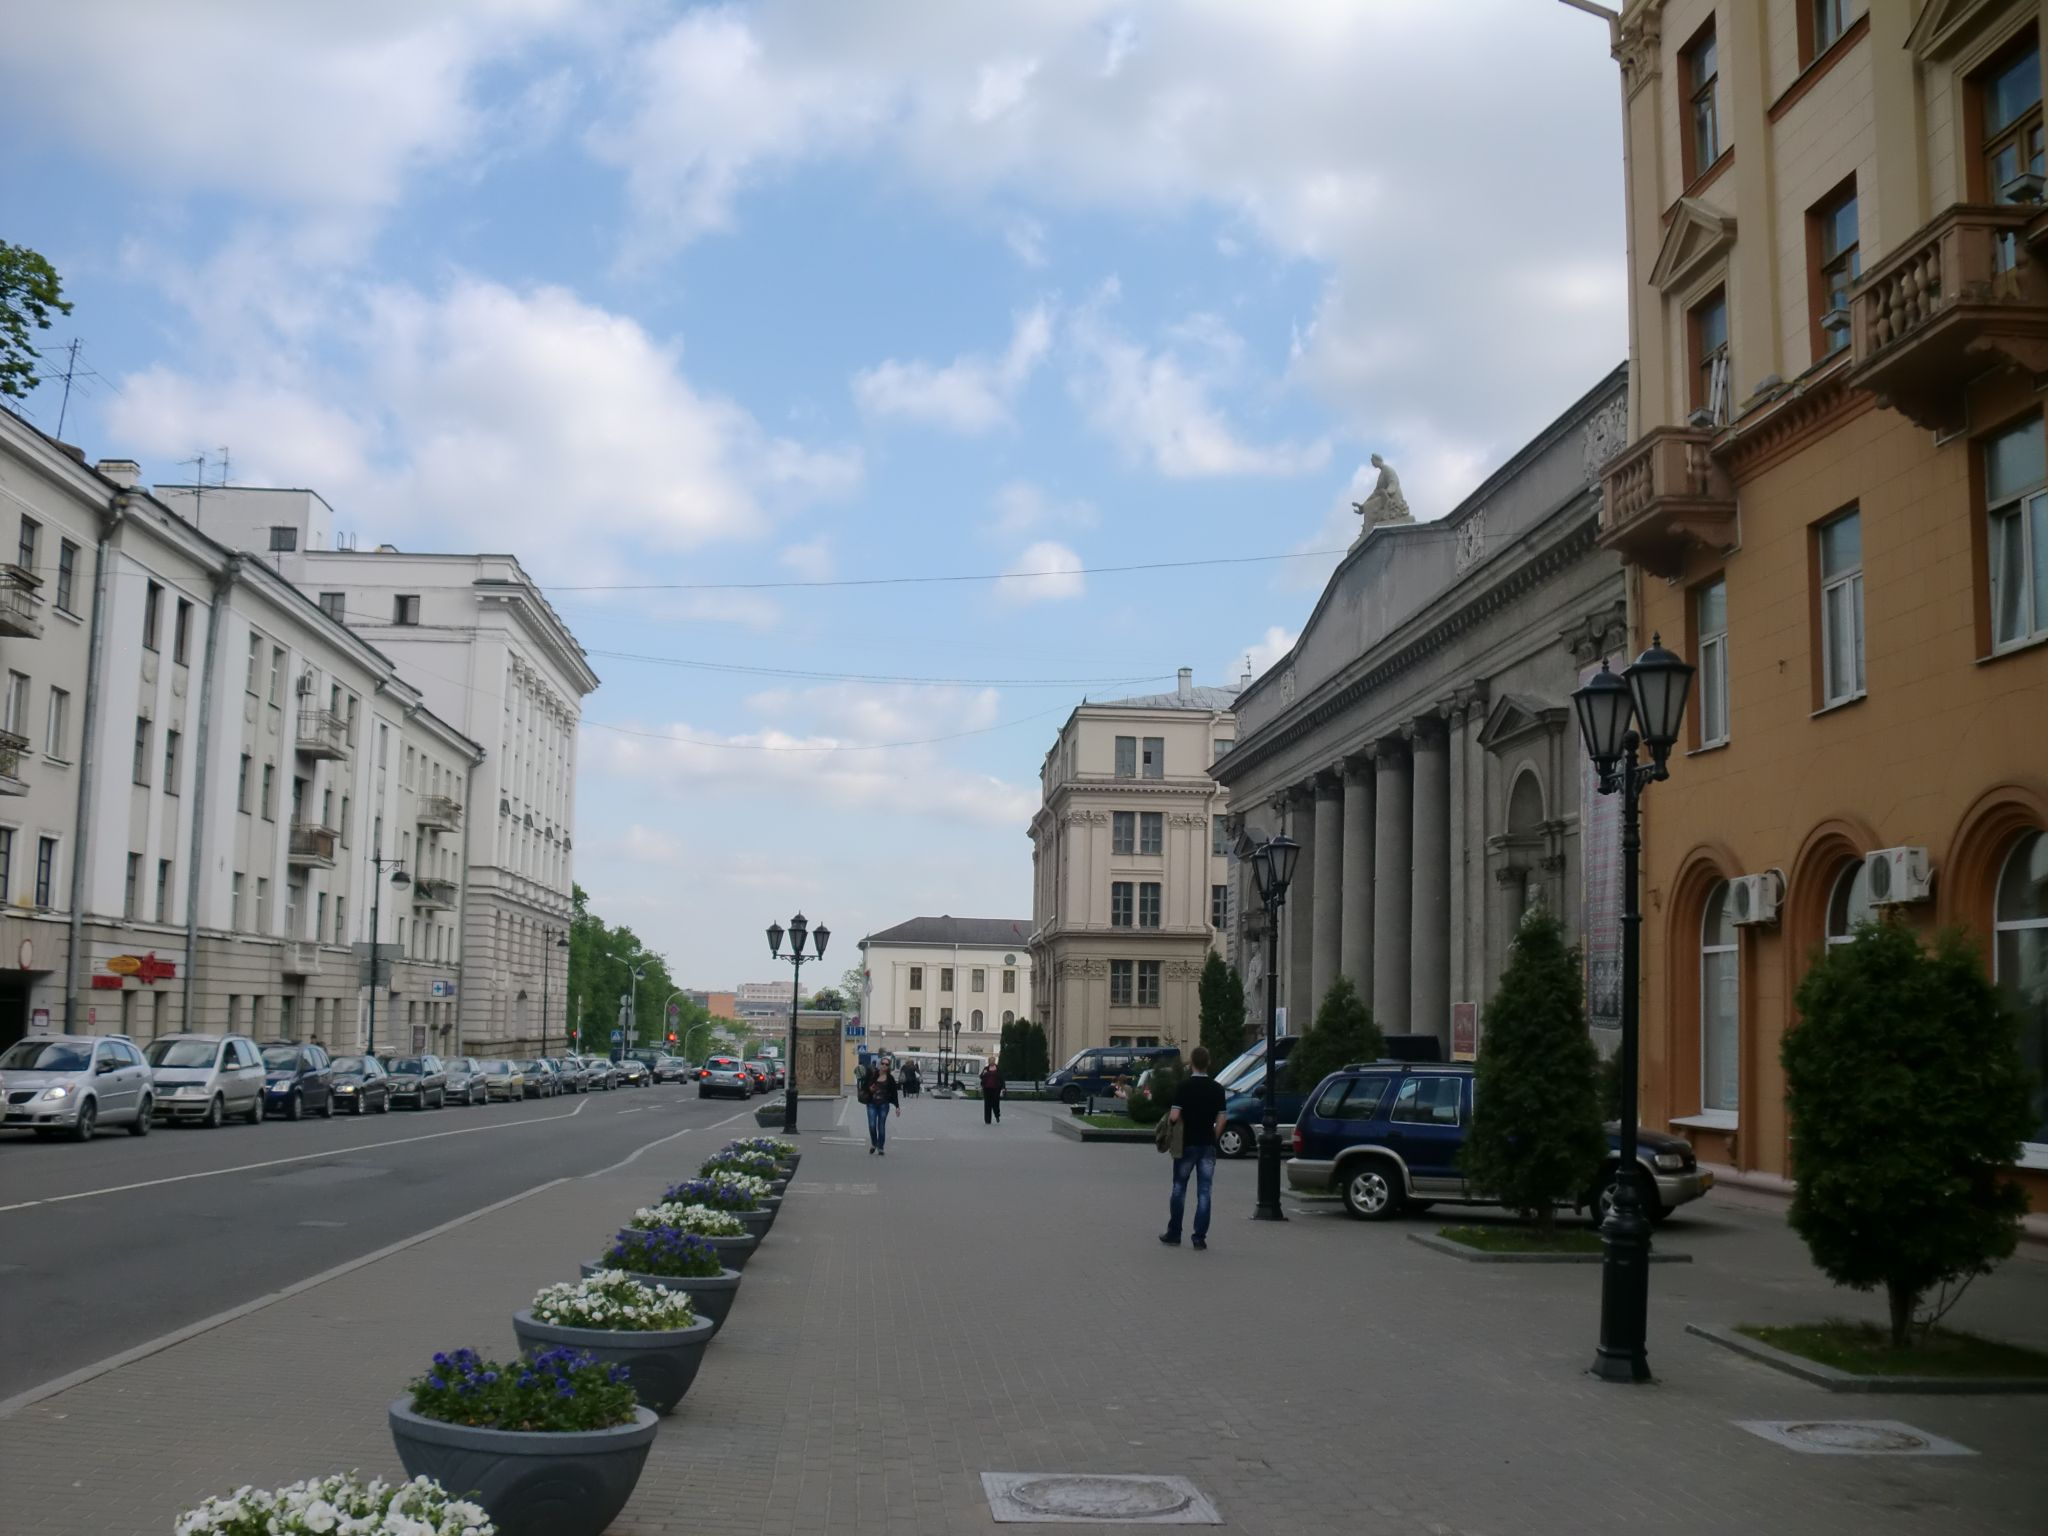 Minsk city 20 - Minsk, 1 amazing city you have to see